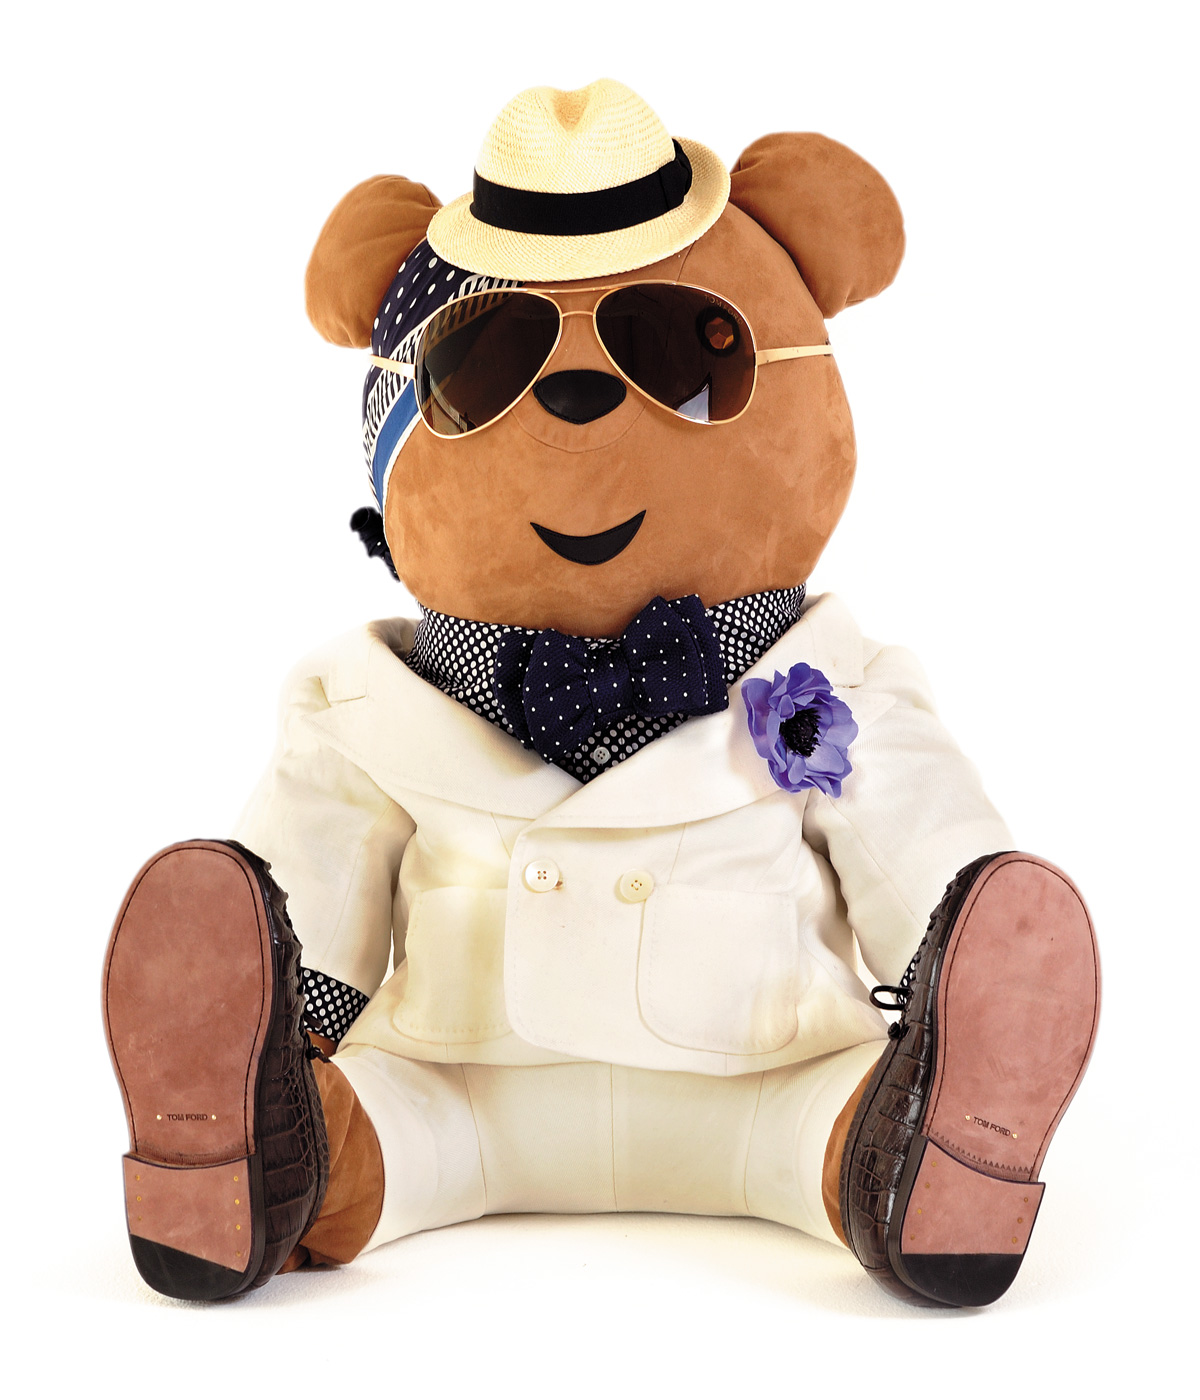 1200x1400_DP_Bear_Tom-Ford